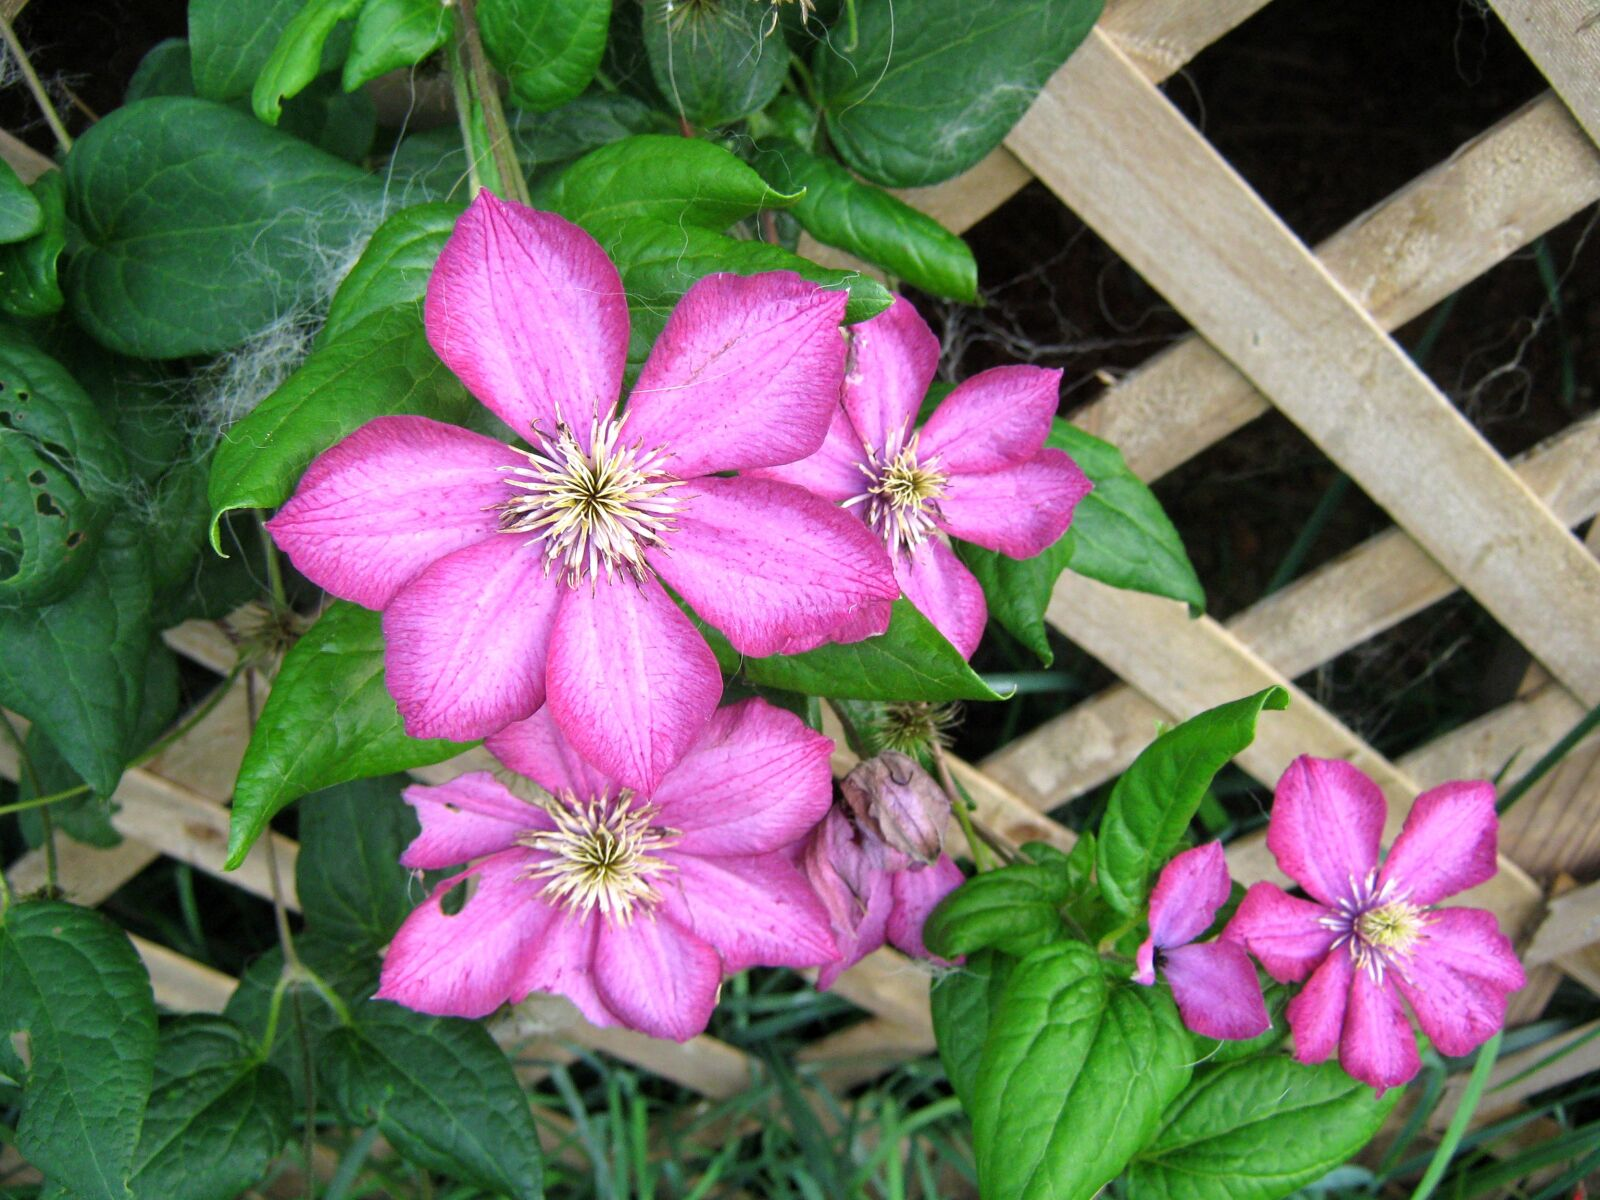 """Canon PowerShot A470 sample photo. """"Pink, flowers, garden"""" photography"""